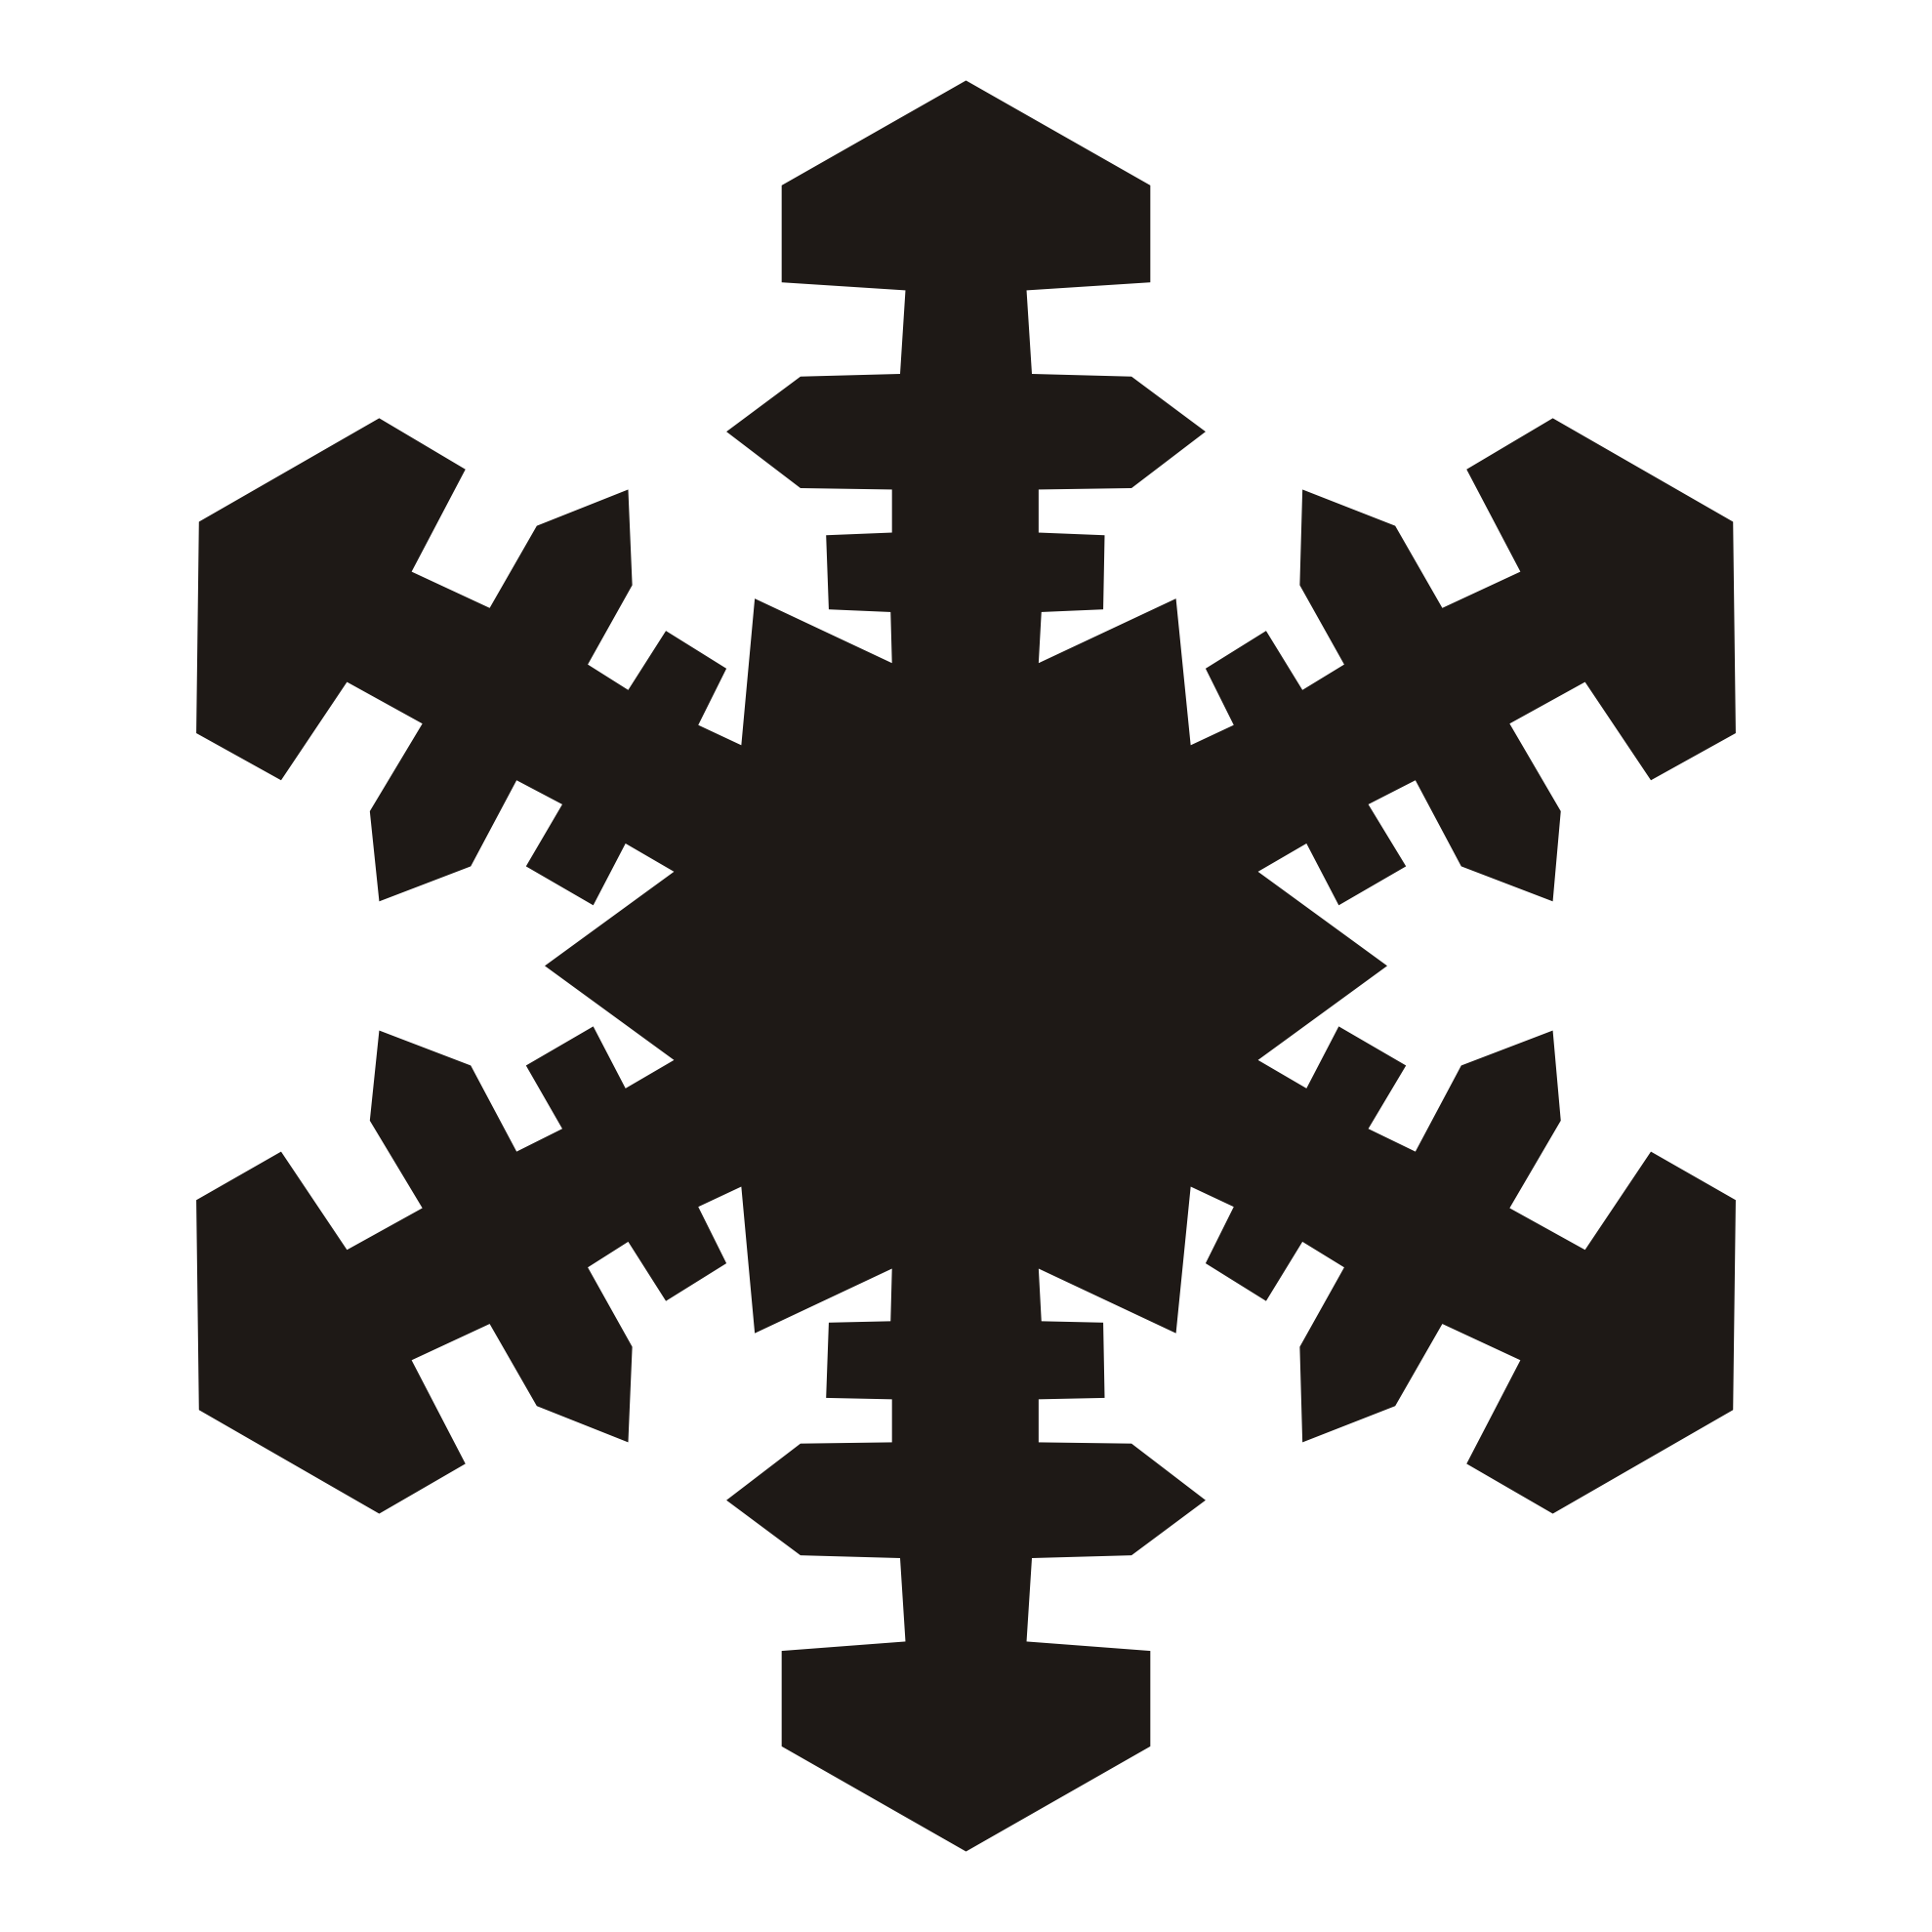 Snowflakes clipart silhouette. Free snowflake cliparts download